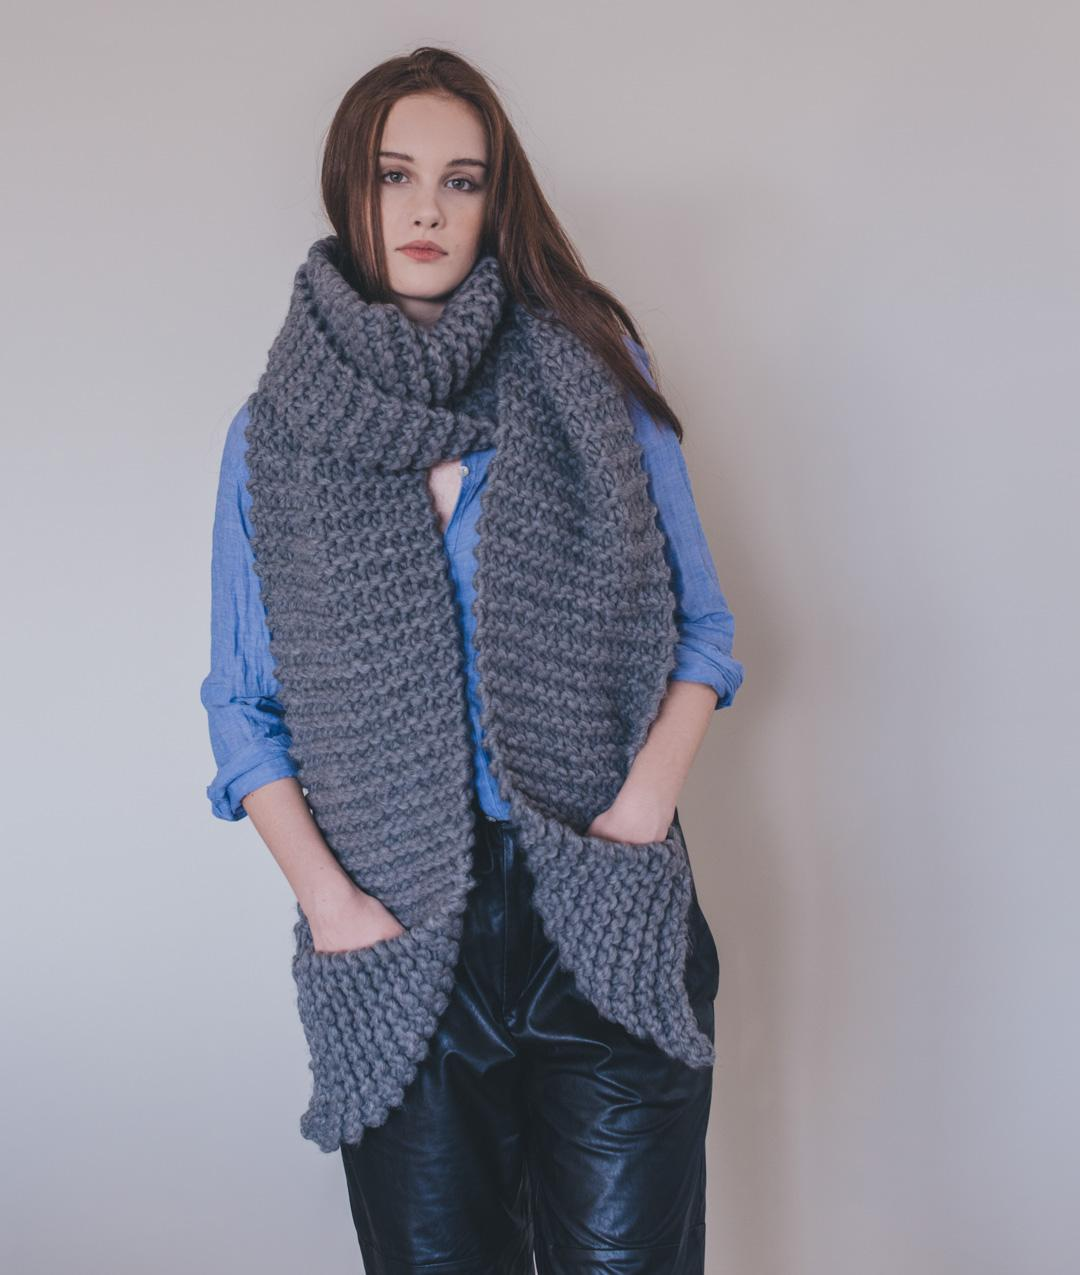 Patterns - Needles & Co. - Aileen Scarf Pattern - 1